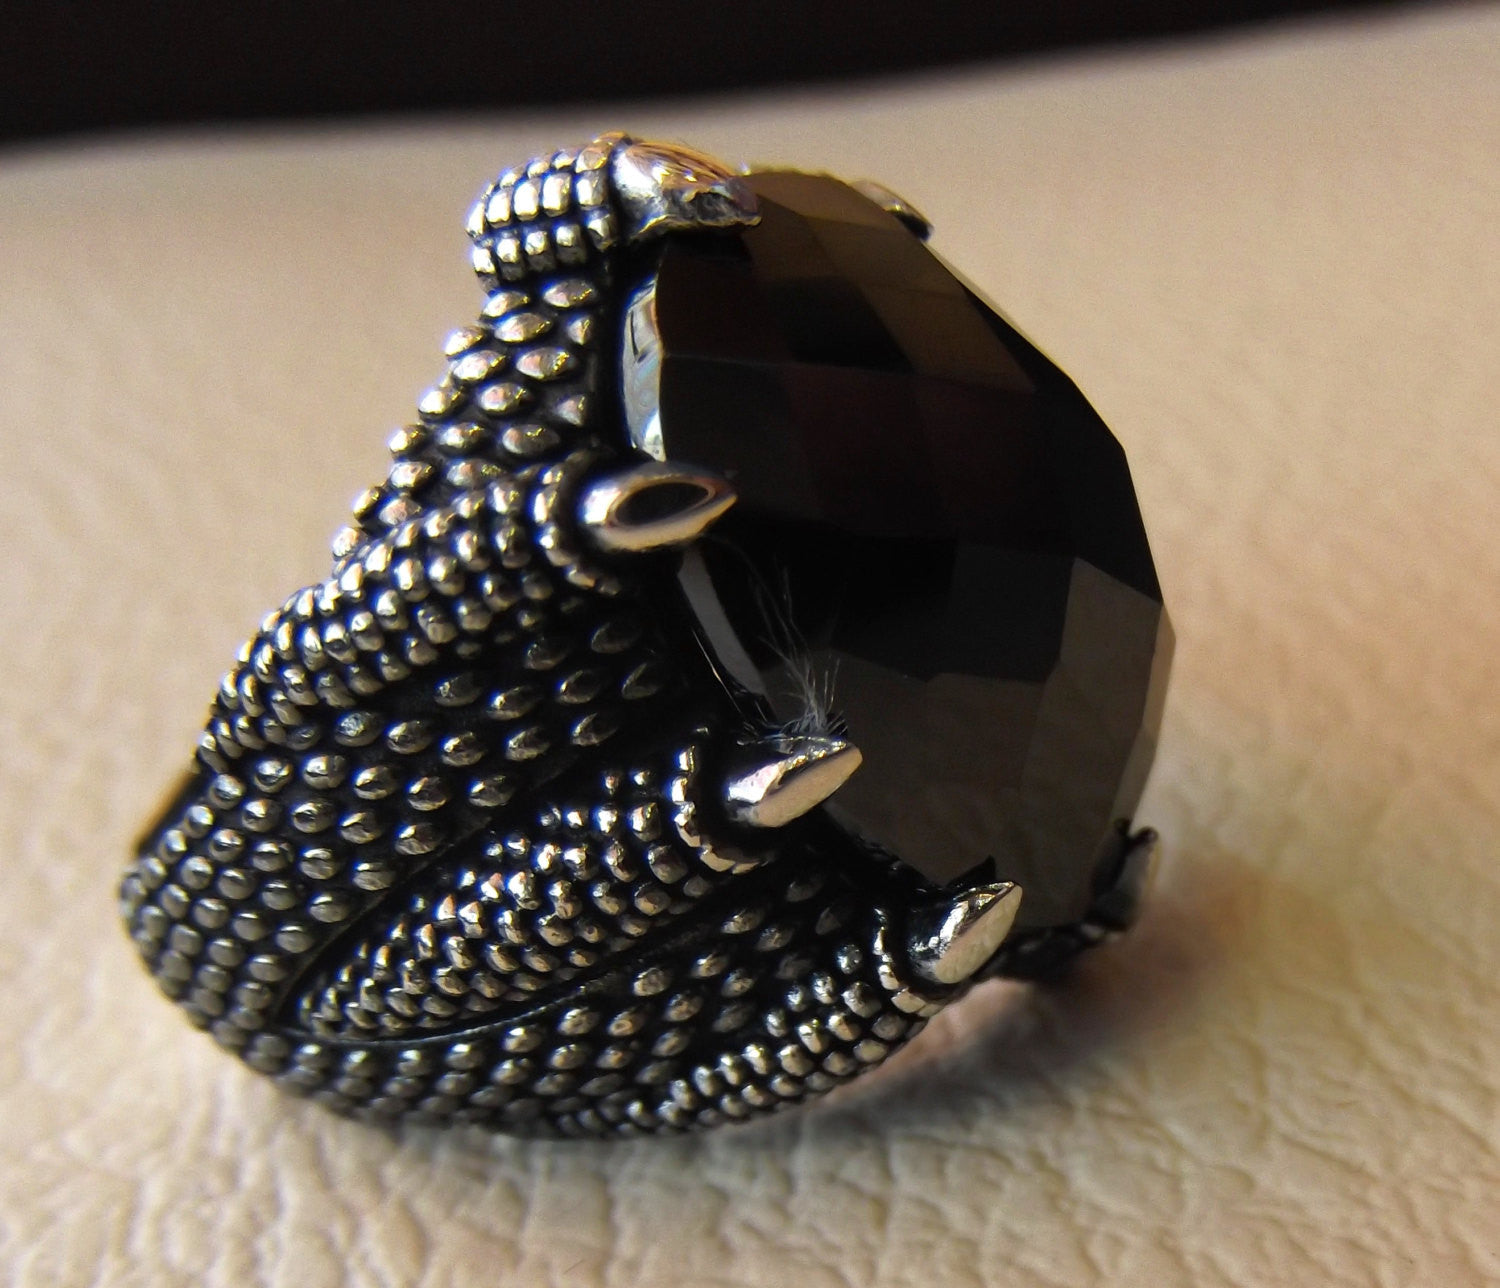 dragon snake mouth sterling silver 925 onyx agate faceted stone oval black all sizes jewelry heavy men ring